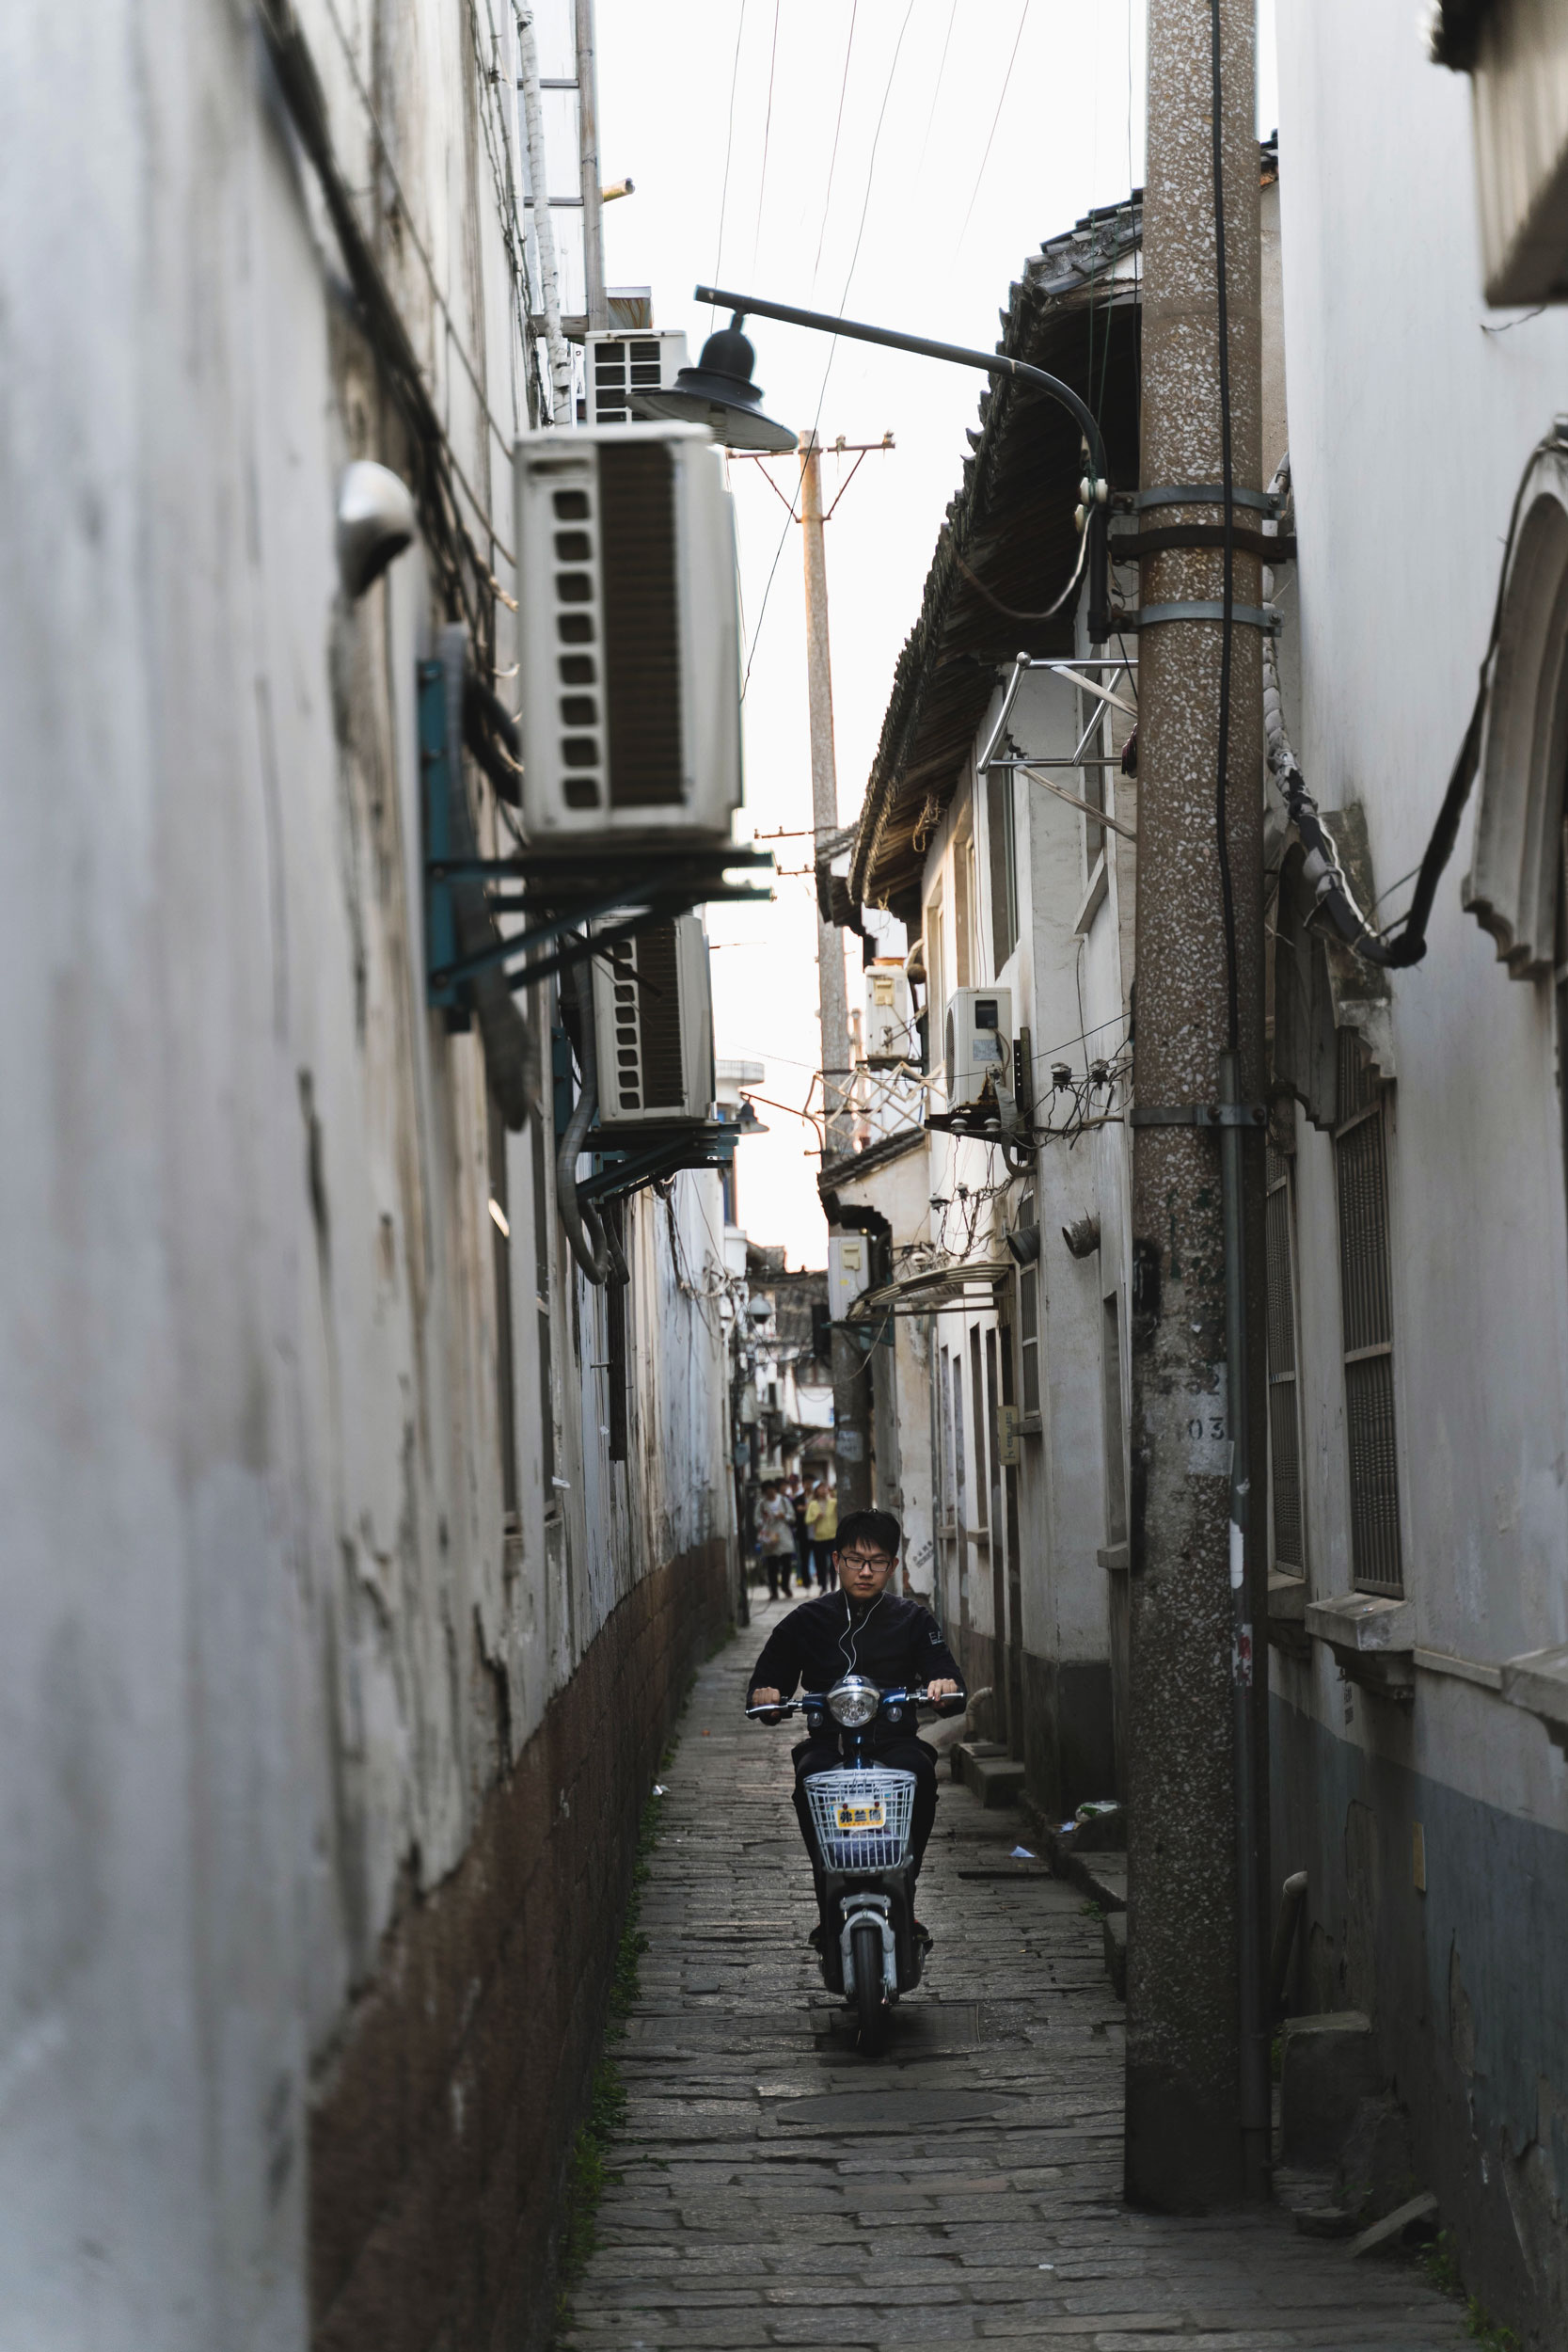 Moped and alleys